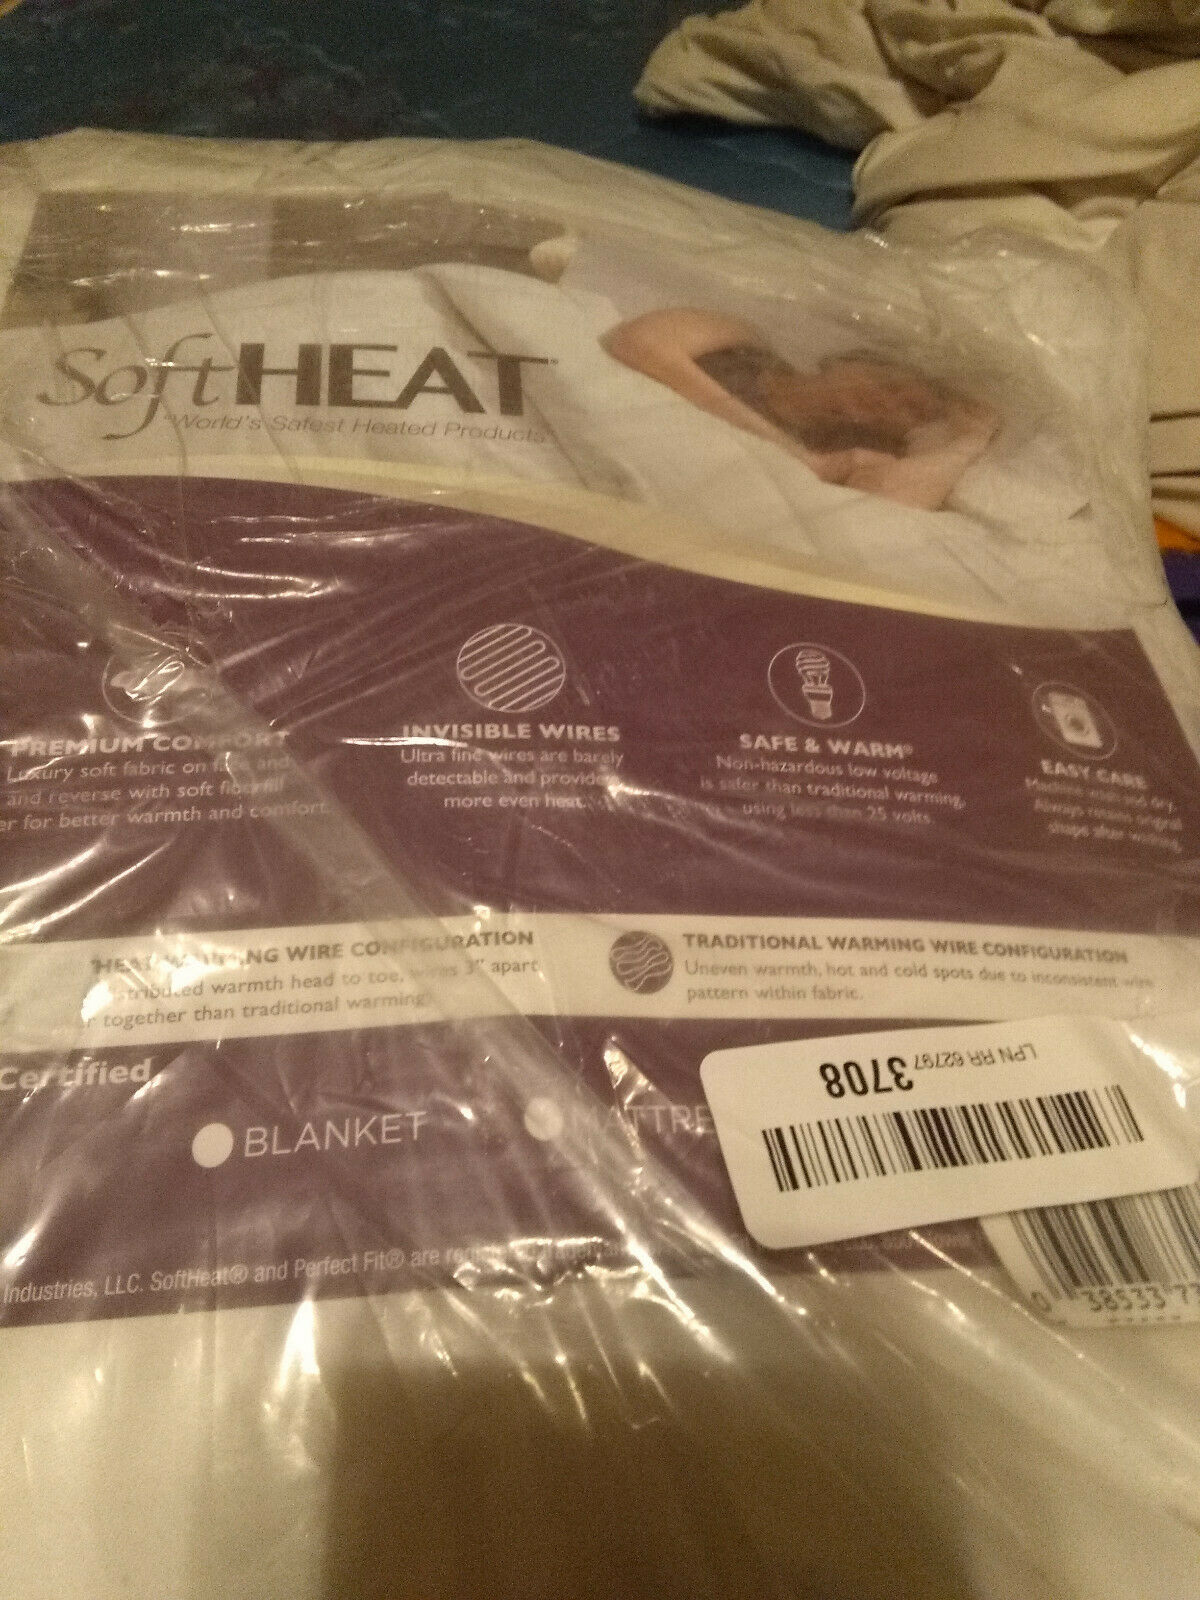 Perfect Fit SoftHeat Smart Heated Heated Heated Electric Mattress Pad with Safe & Warm Low 233 751608